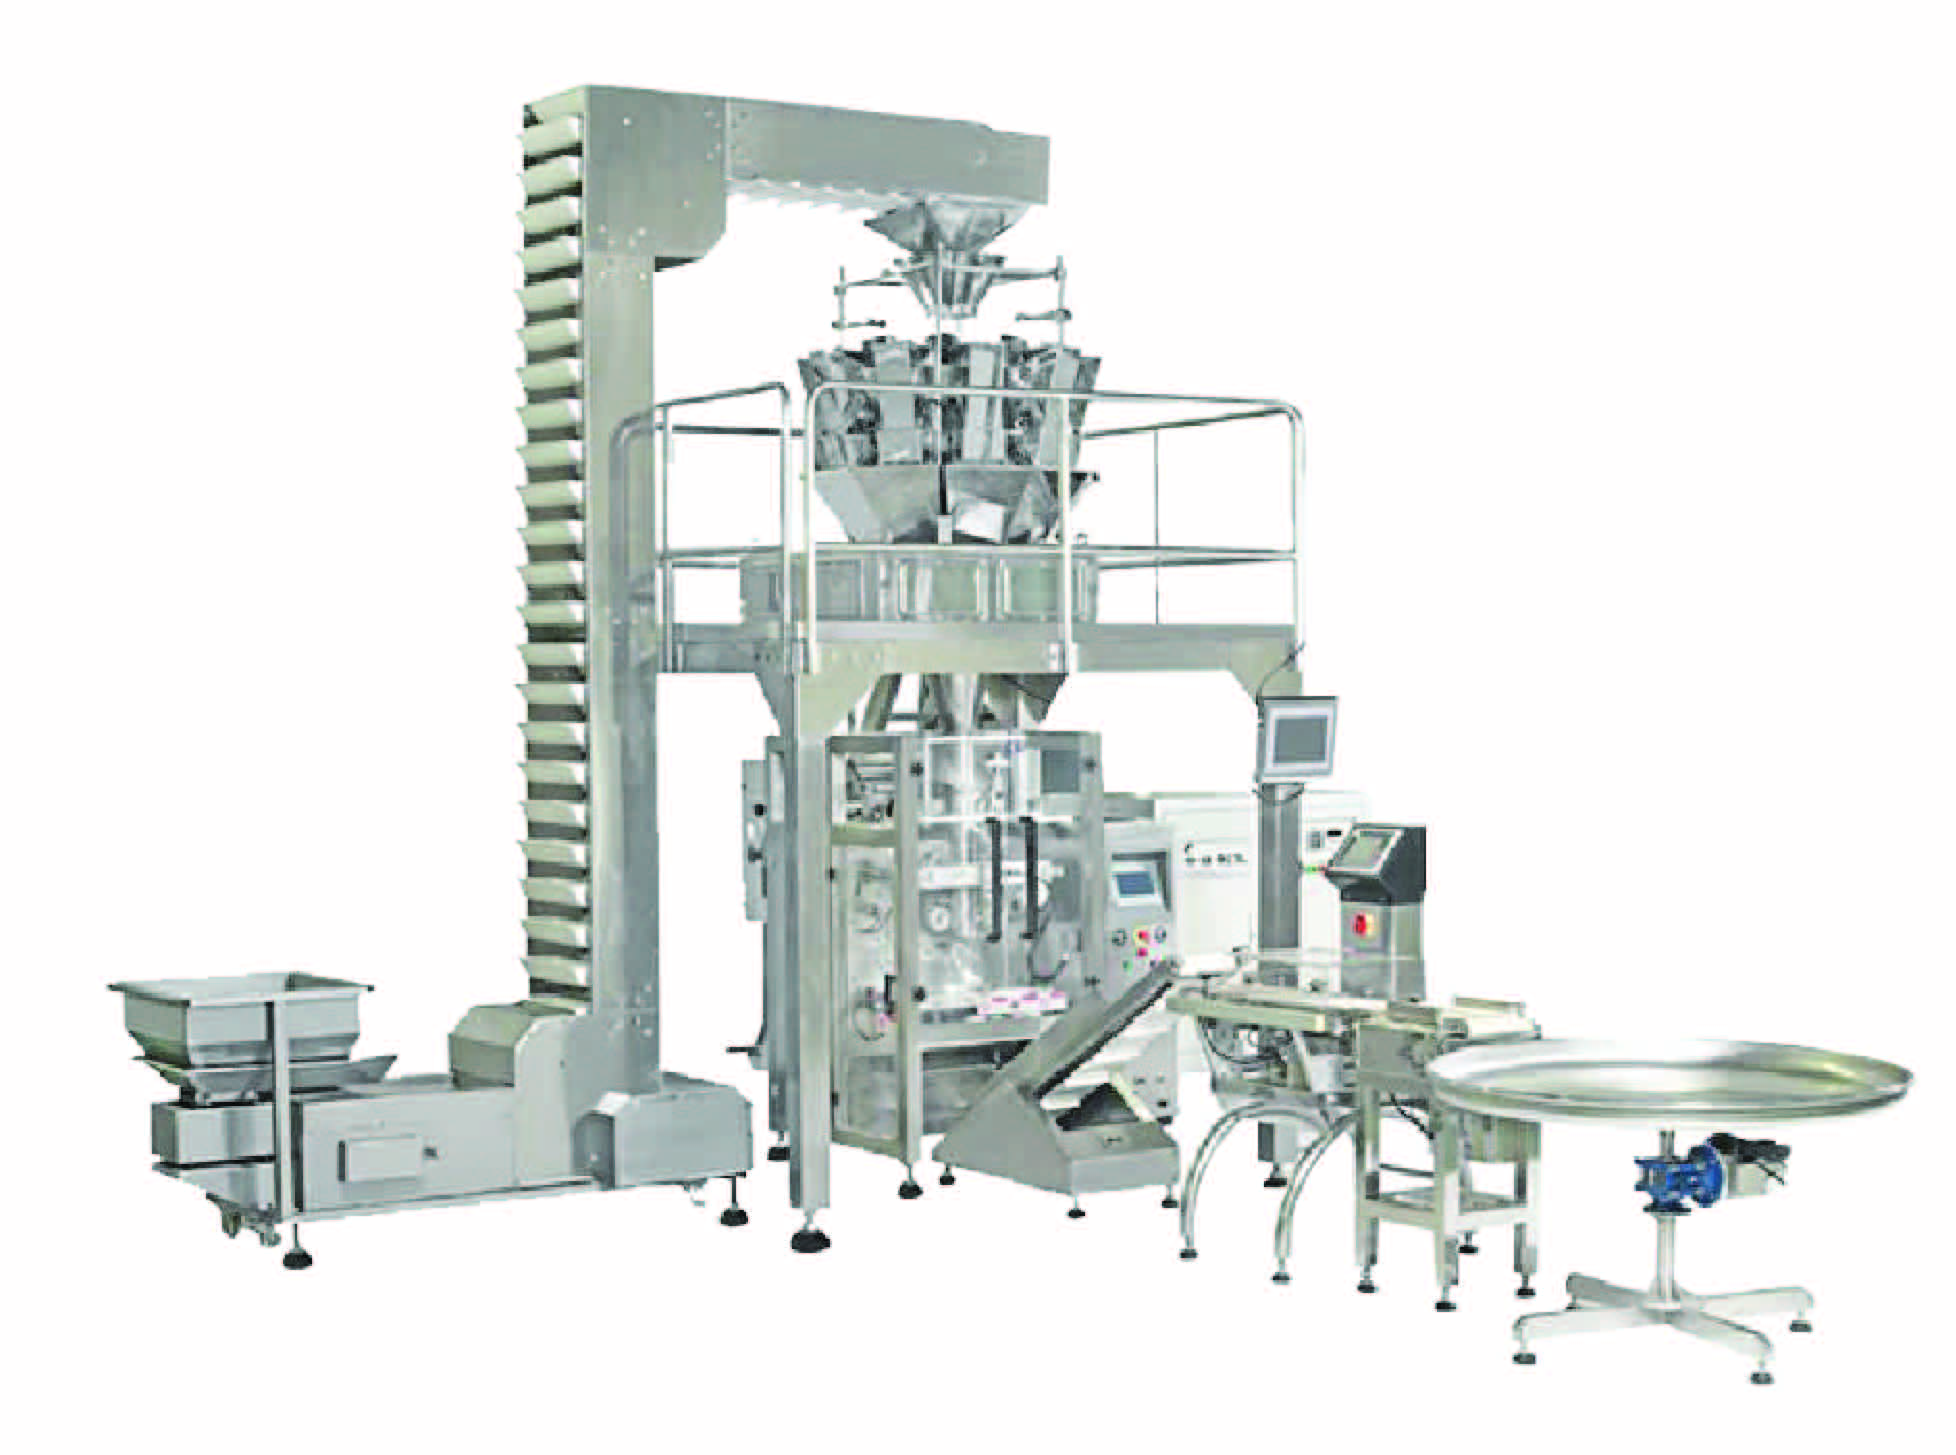 2-9_hal4 pro 1(7a) Vertical Packaging Machine with Multi-Heads Weigher